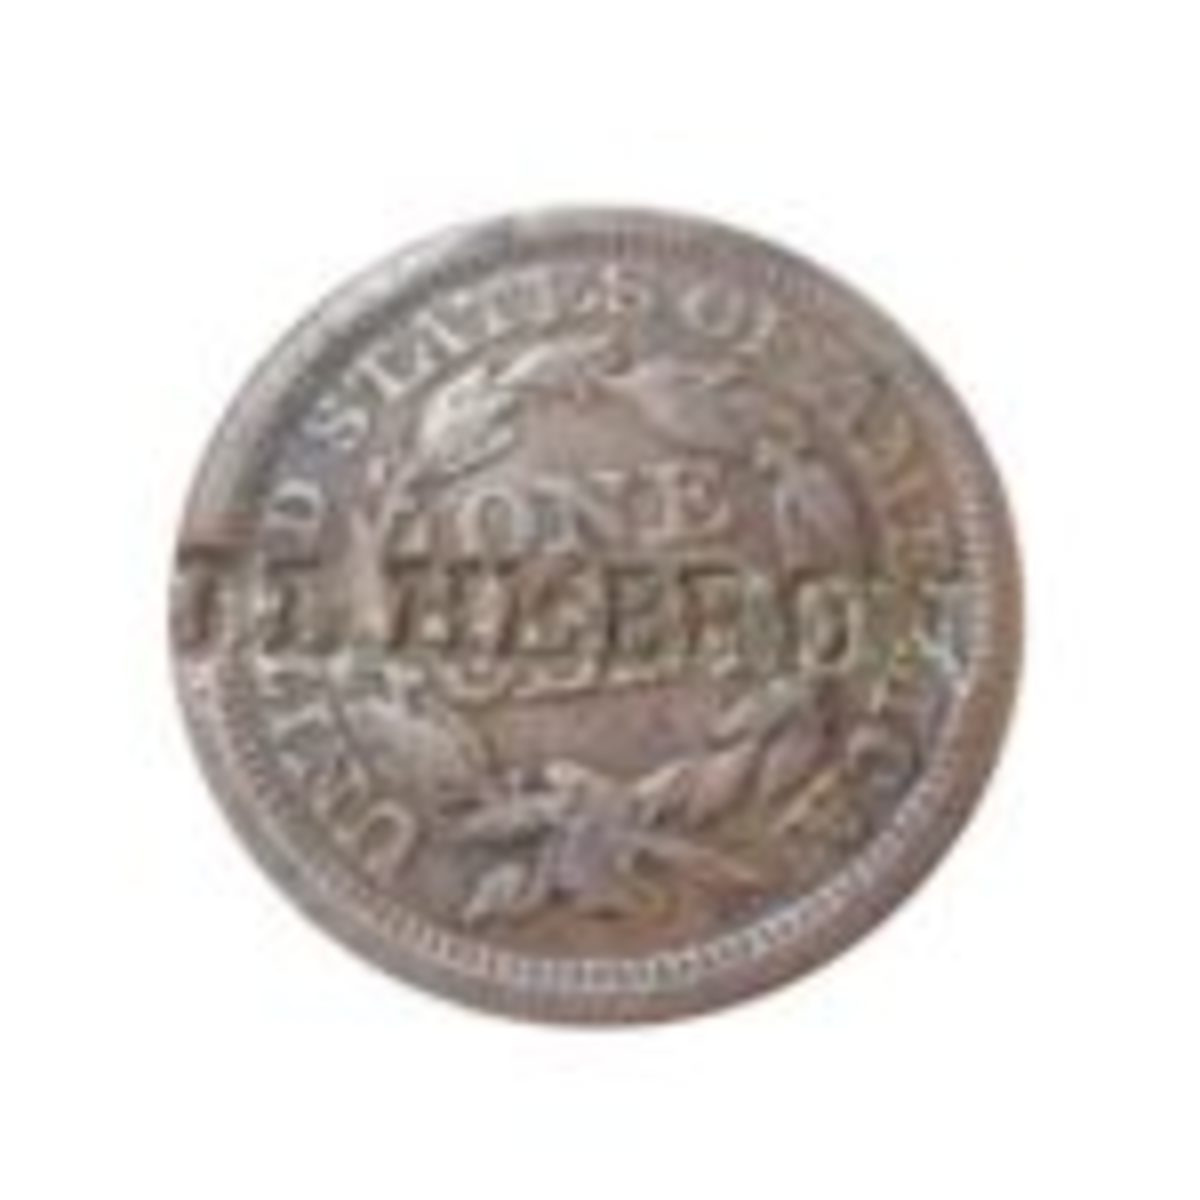 'J.L. Hebron' is stamped in a large cent, which was made by this Ohio soldier, John L. Hebron. This dog tag is part of the huge Hebron family collection that can be viewed online at http://www.midtenrelics.com.